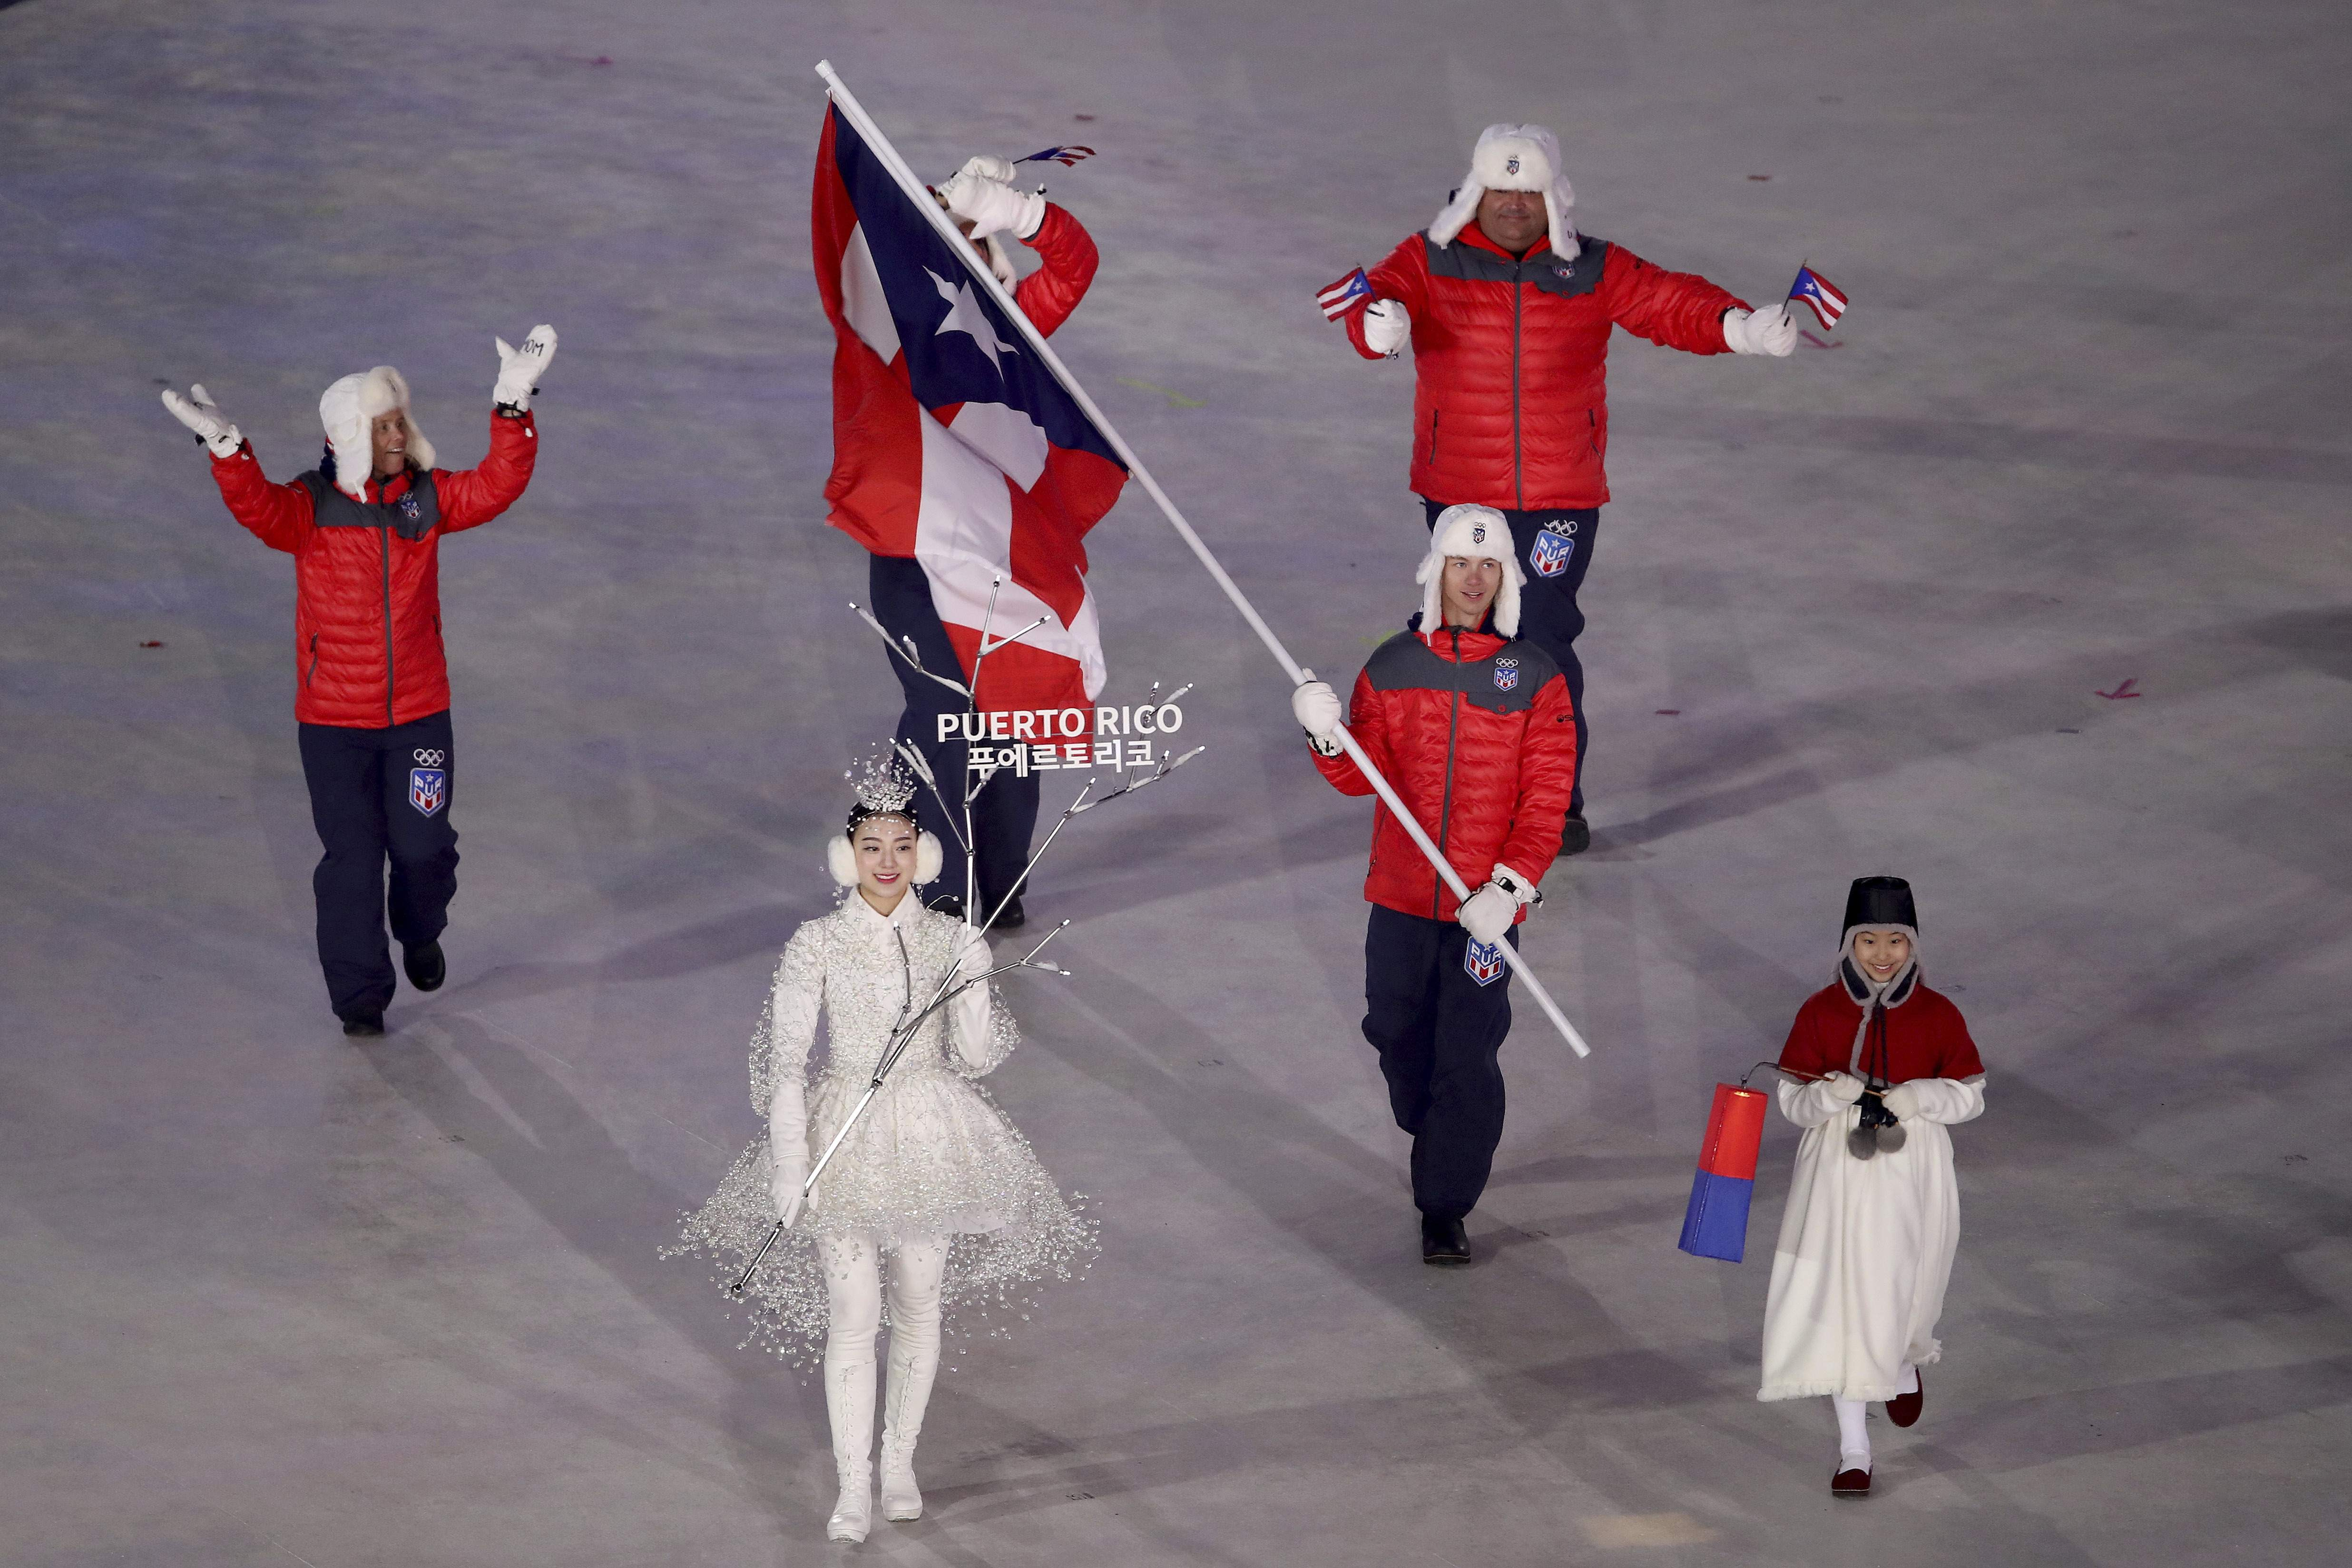 Charles Flaherty carries the flag of Puerto Rico during the opening ceremony of the 2018 Winter Olympics in Pyeongchang, South Korea, Friday, Feb. 9, 2018. (Sean Haffey/Pool Photo via AP)